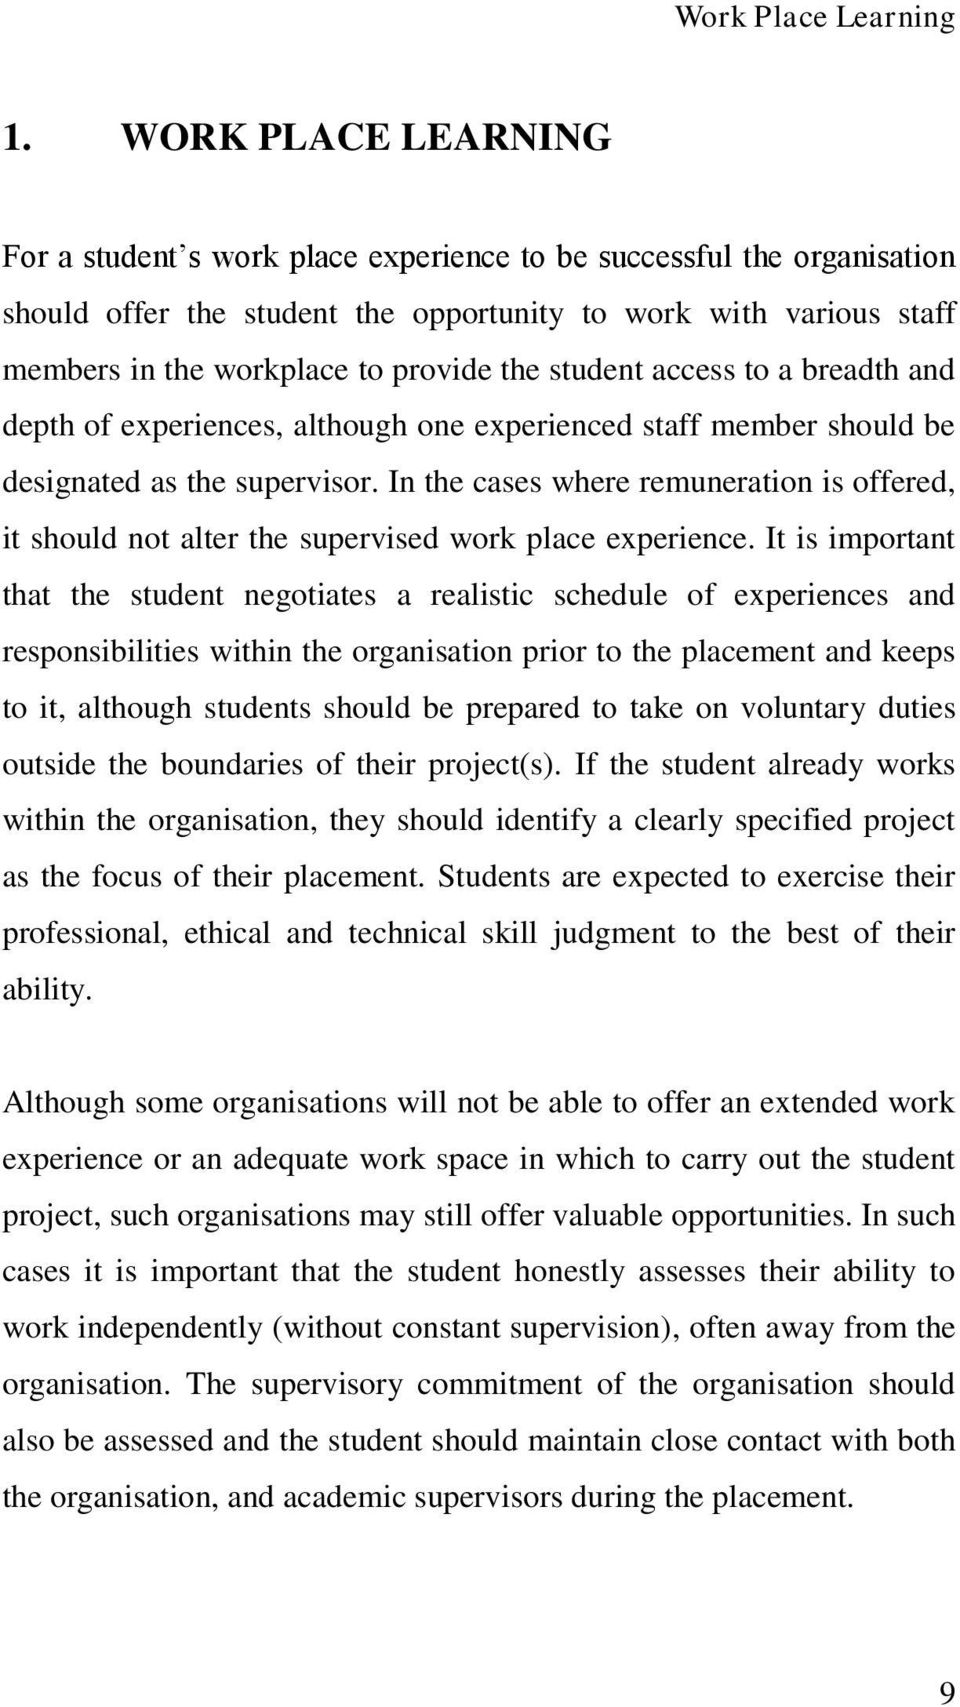 student access to a breadth and depth of experiences, although one experienced staff member should be designated as the supervisor.